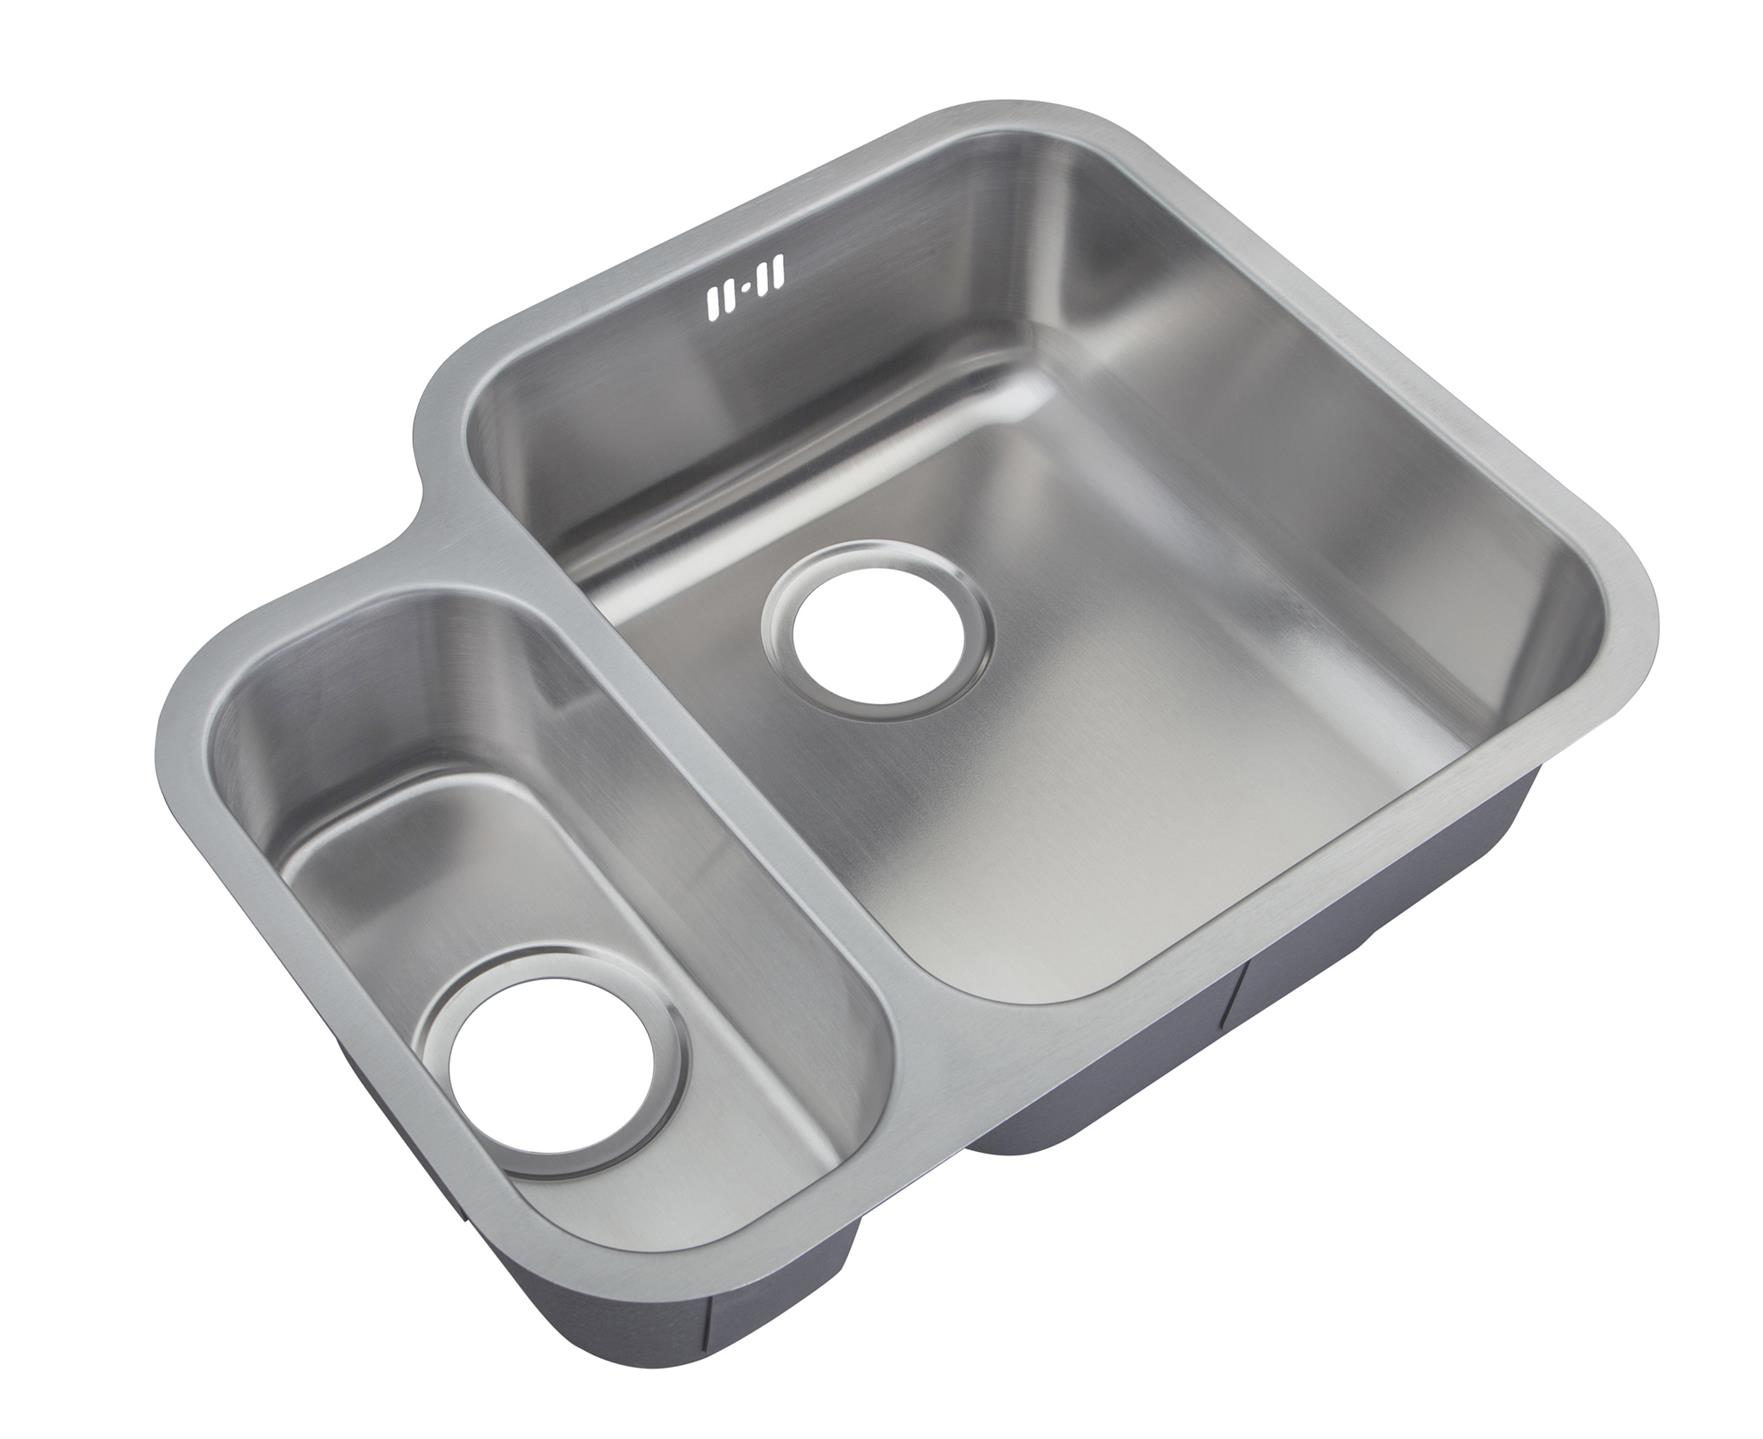 This is a kitchen sink in a granite worktop - Undermount sinks are sold online at www.grandtaps.co.uk/products/cat_29164-Stainless-Steel-Undermount-Sinks.html